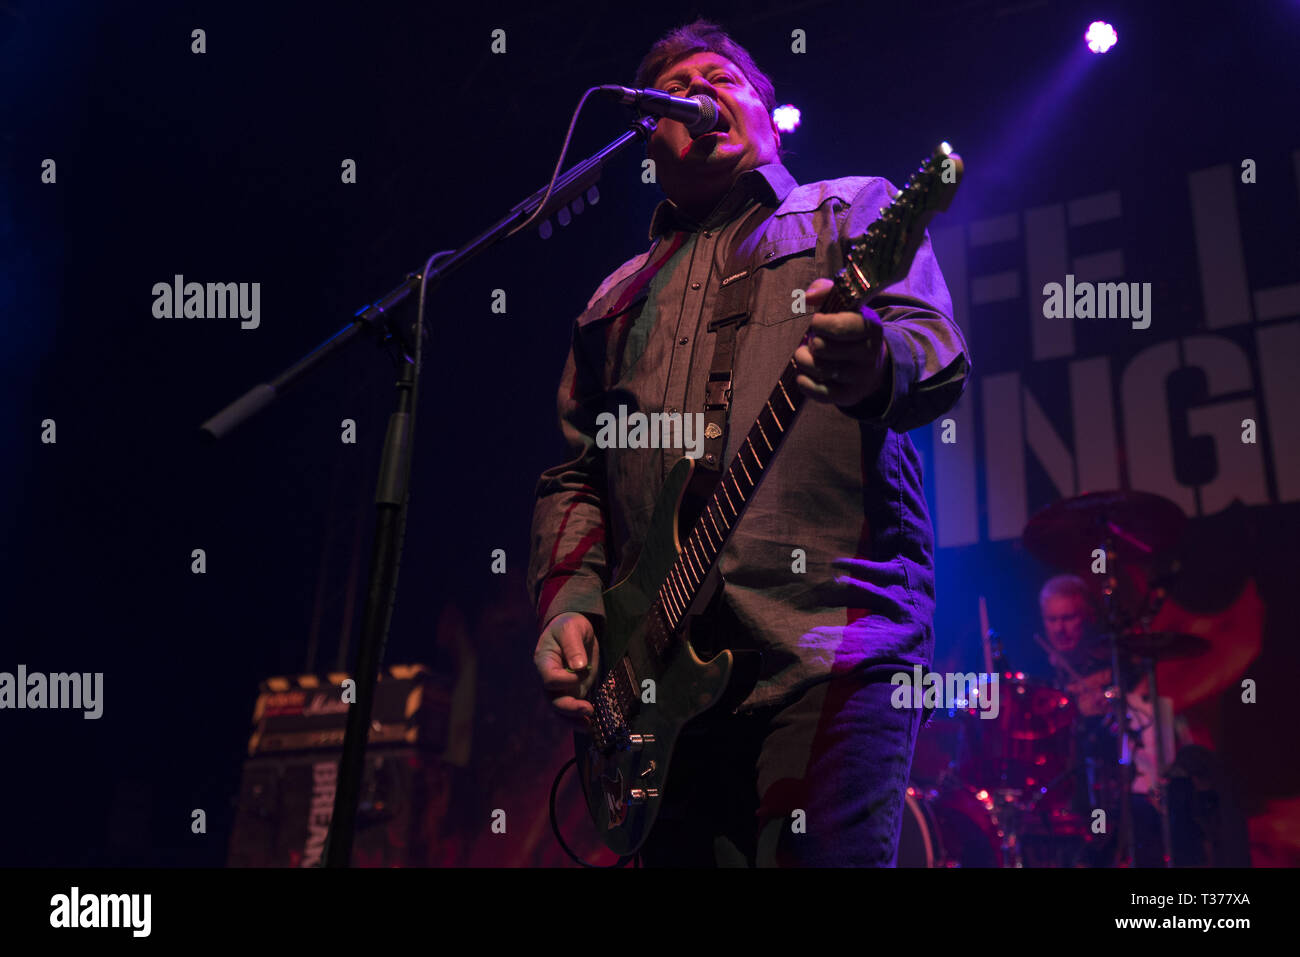 Belfast punk rock band Stiff Little Fingers performing at the O2 Academy in Leeds on the opening night of The Ignition Tour 2019  Featuring: Jake Burns, Stiff Little Fingers Where: Leeds, United Kingdom When: 06 Mar 2019 Credit: Graham Finney/WENN Stock Photo